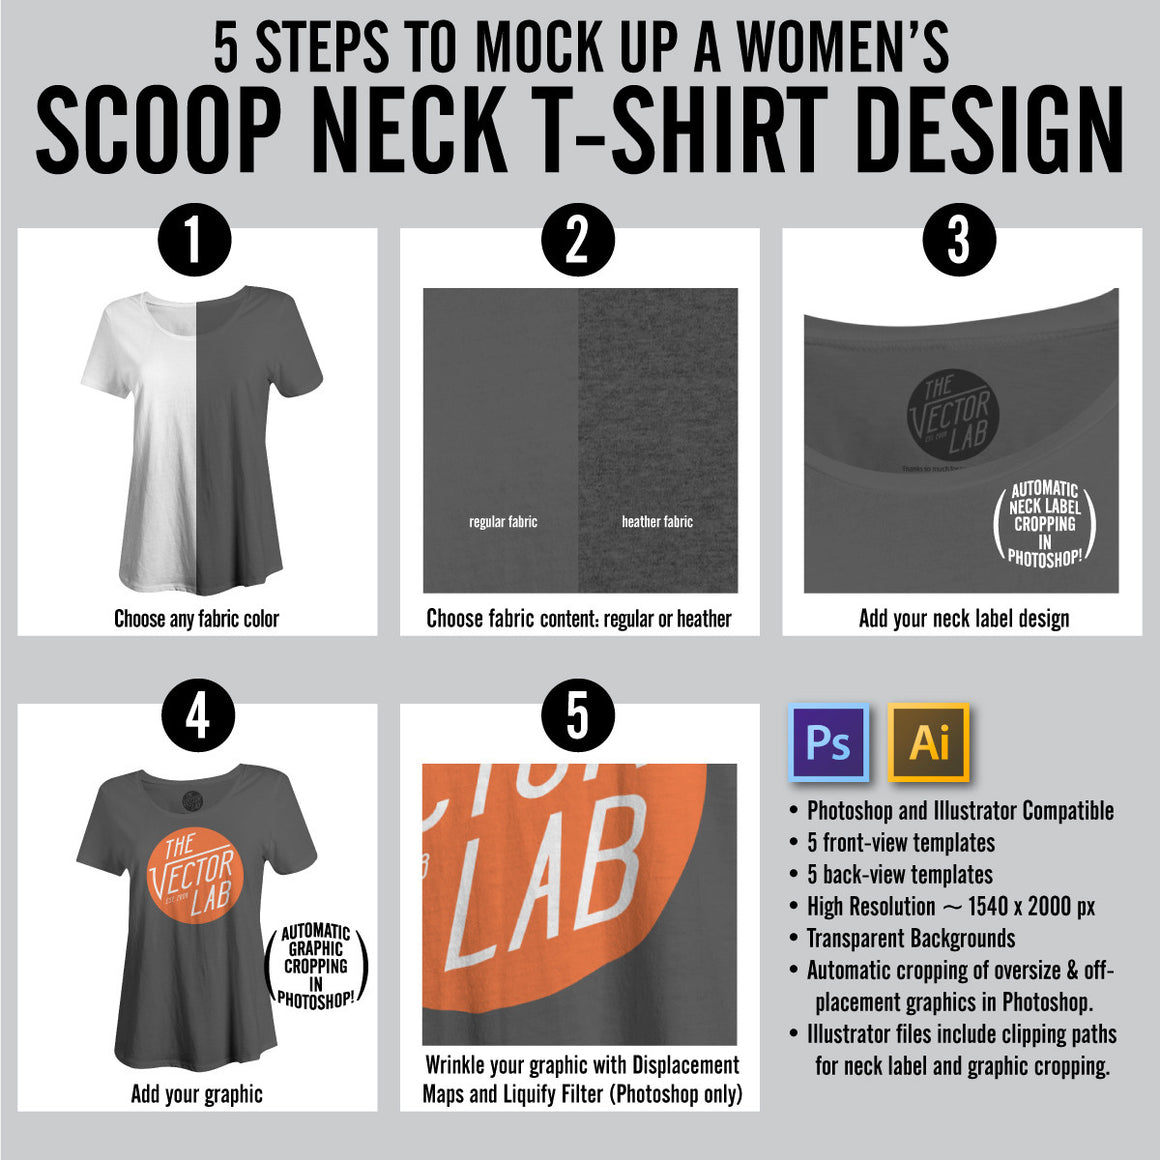 Steps to Mock Up a Women's Scoop Neck T-Shirt Design - Photoshop and Illustrator